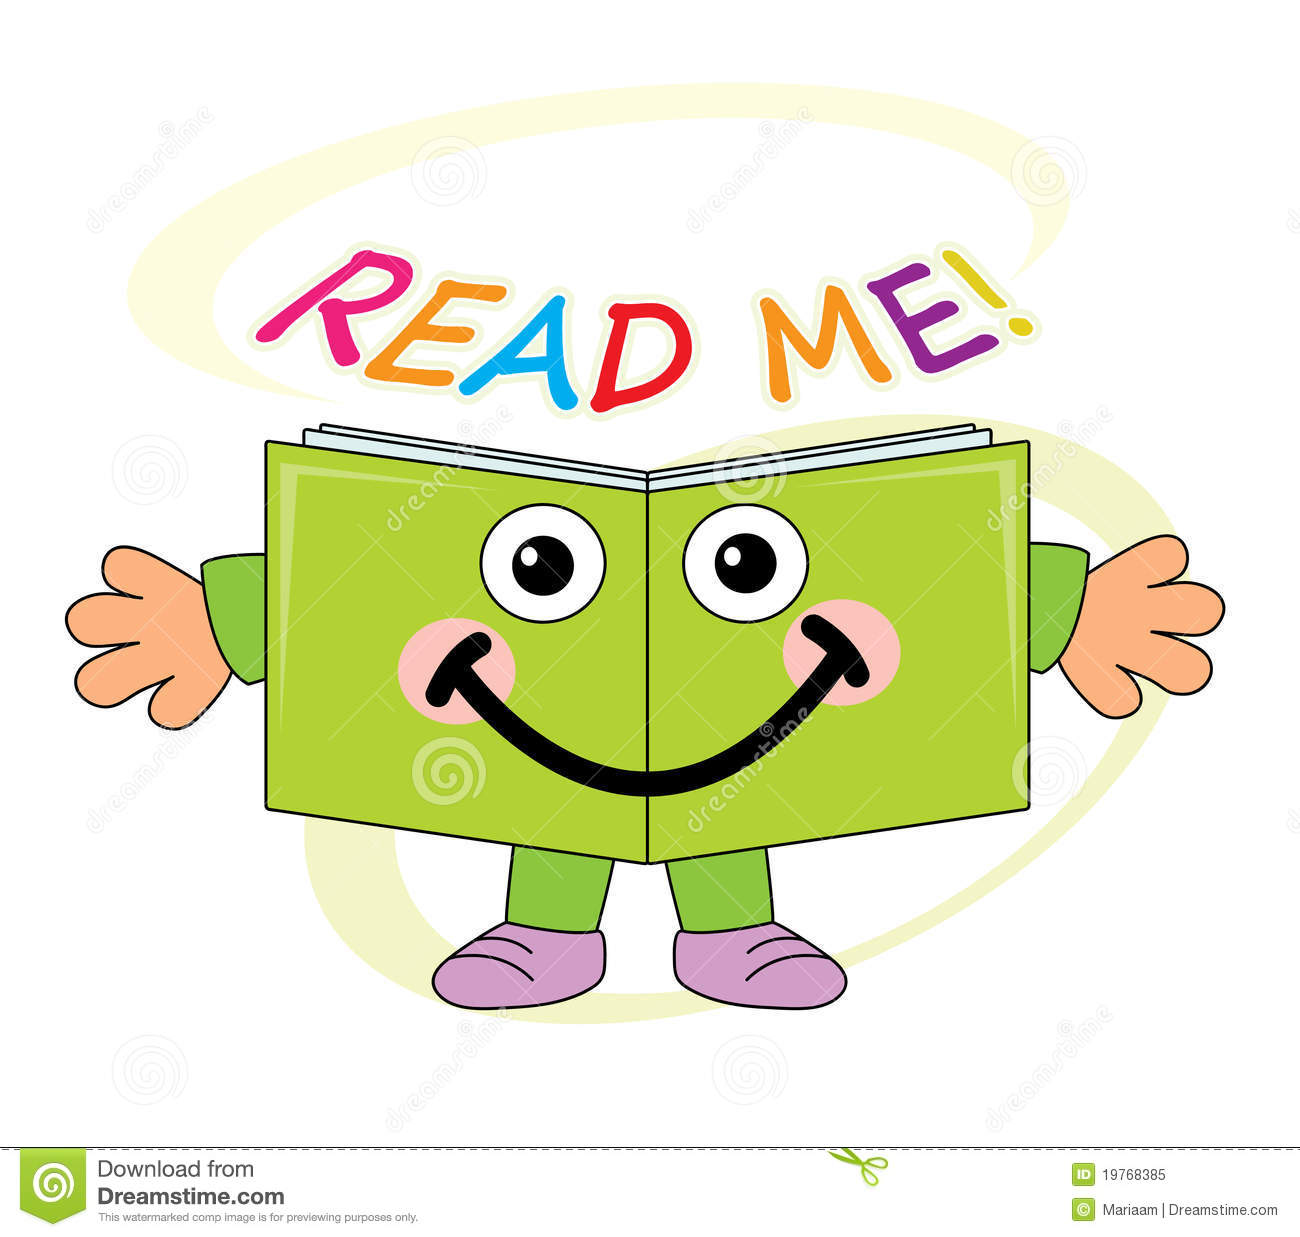 Read me clipart 5 » Clipart Station.